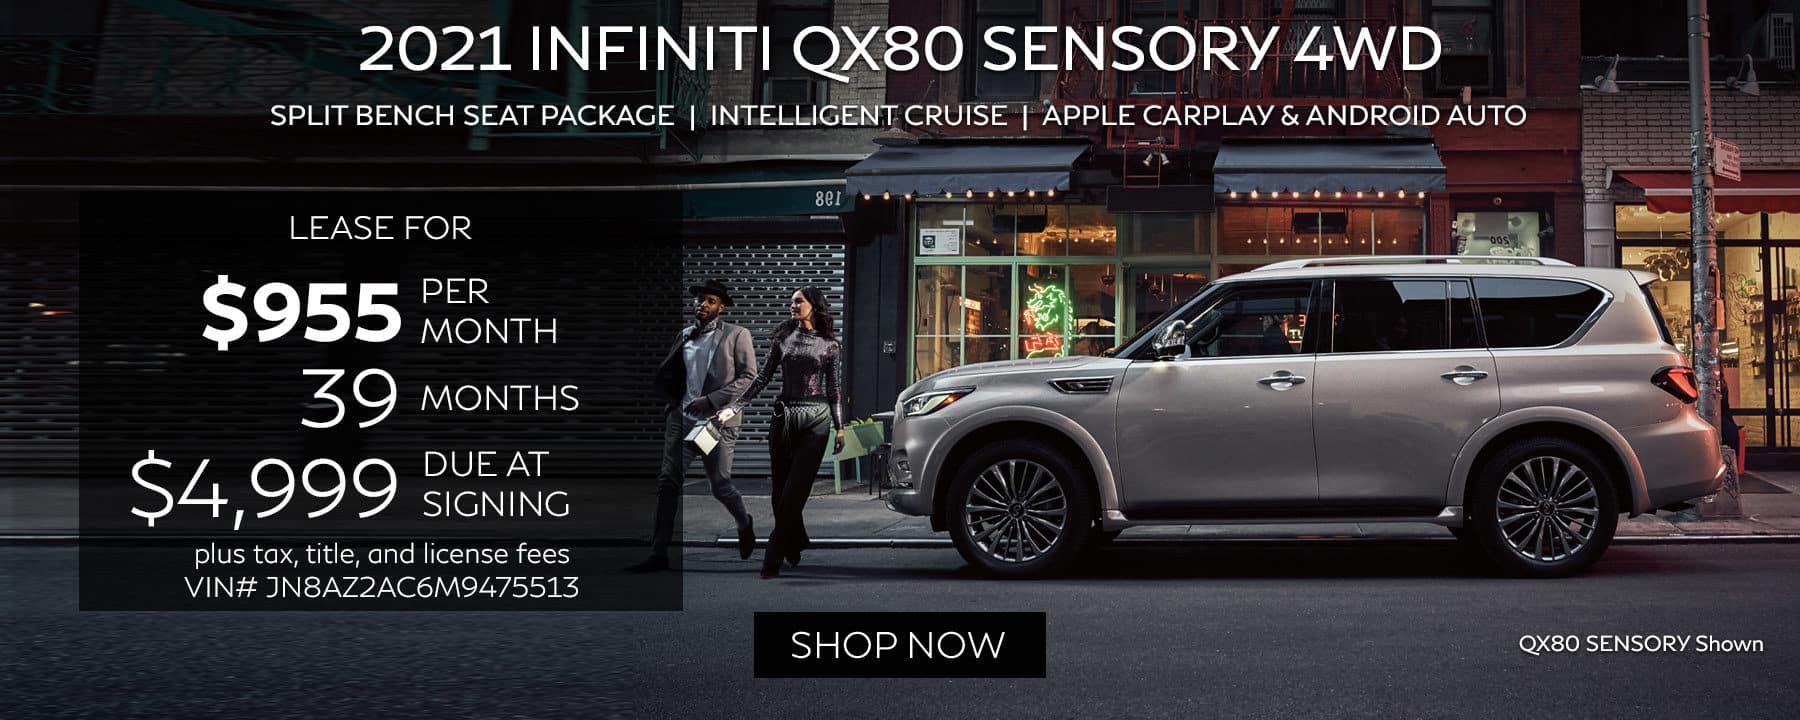 Lease a 2021 QX80 SENSORY 4WD for $955 per month for 39 months with $4,999 due at signing.